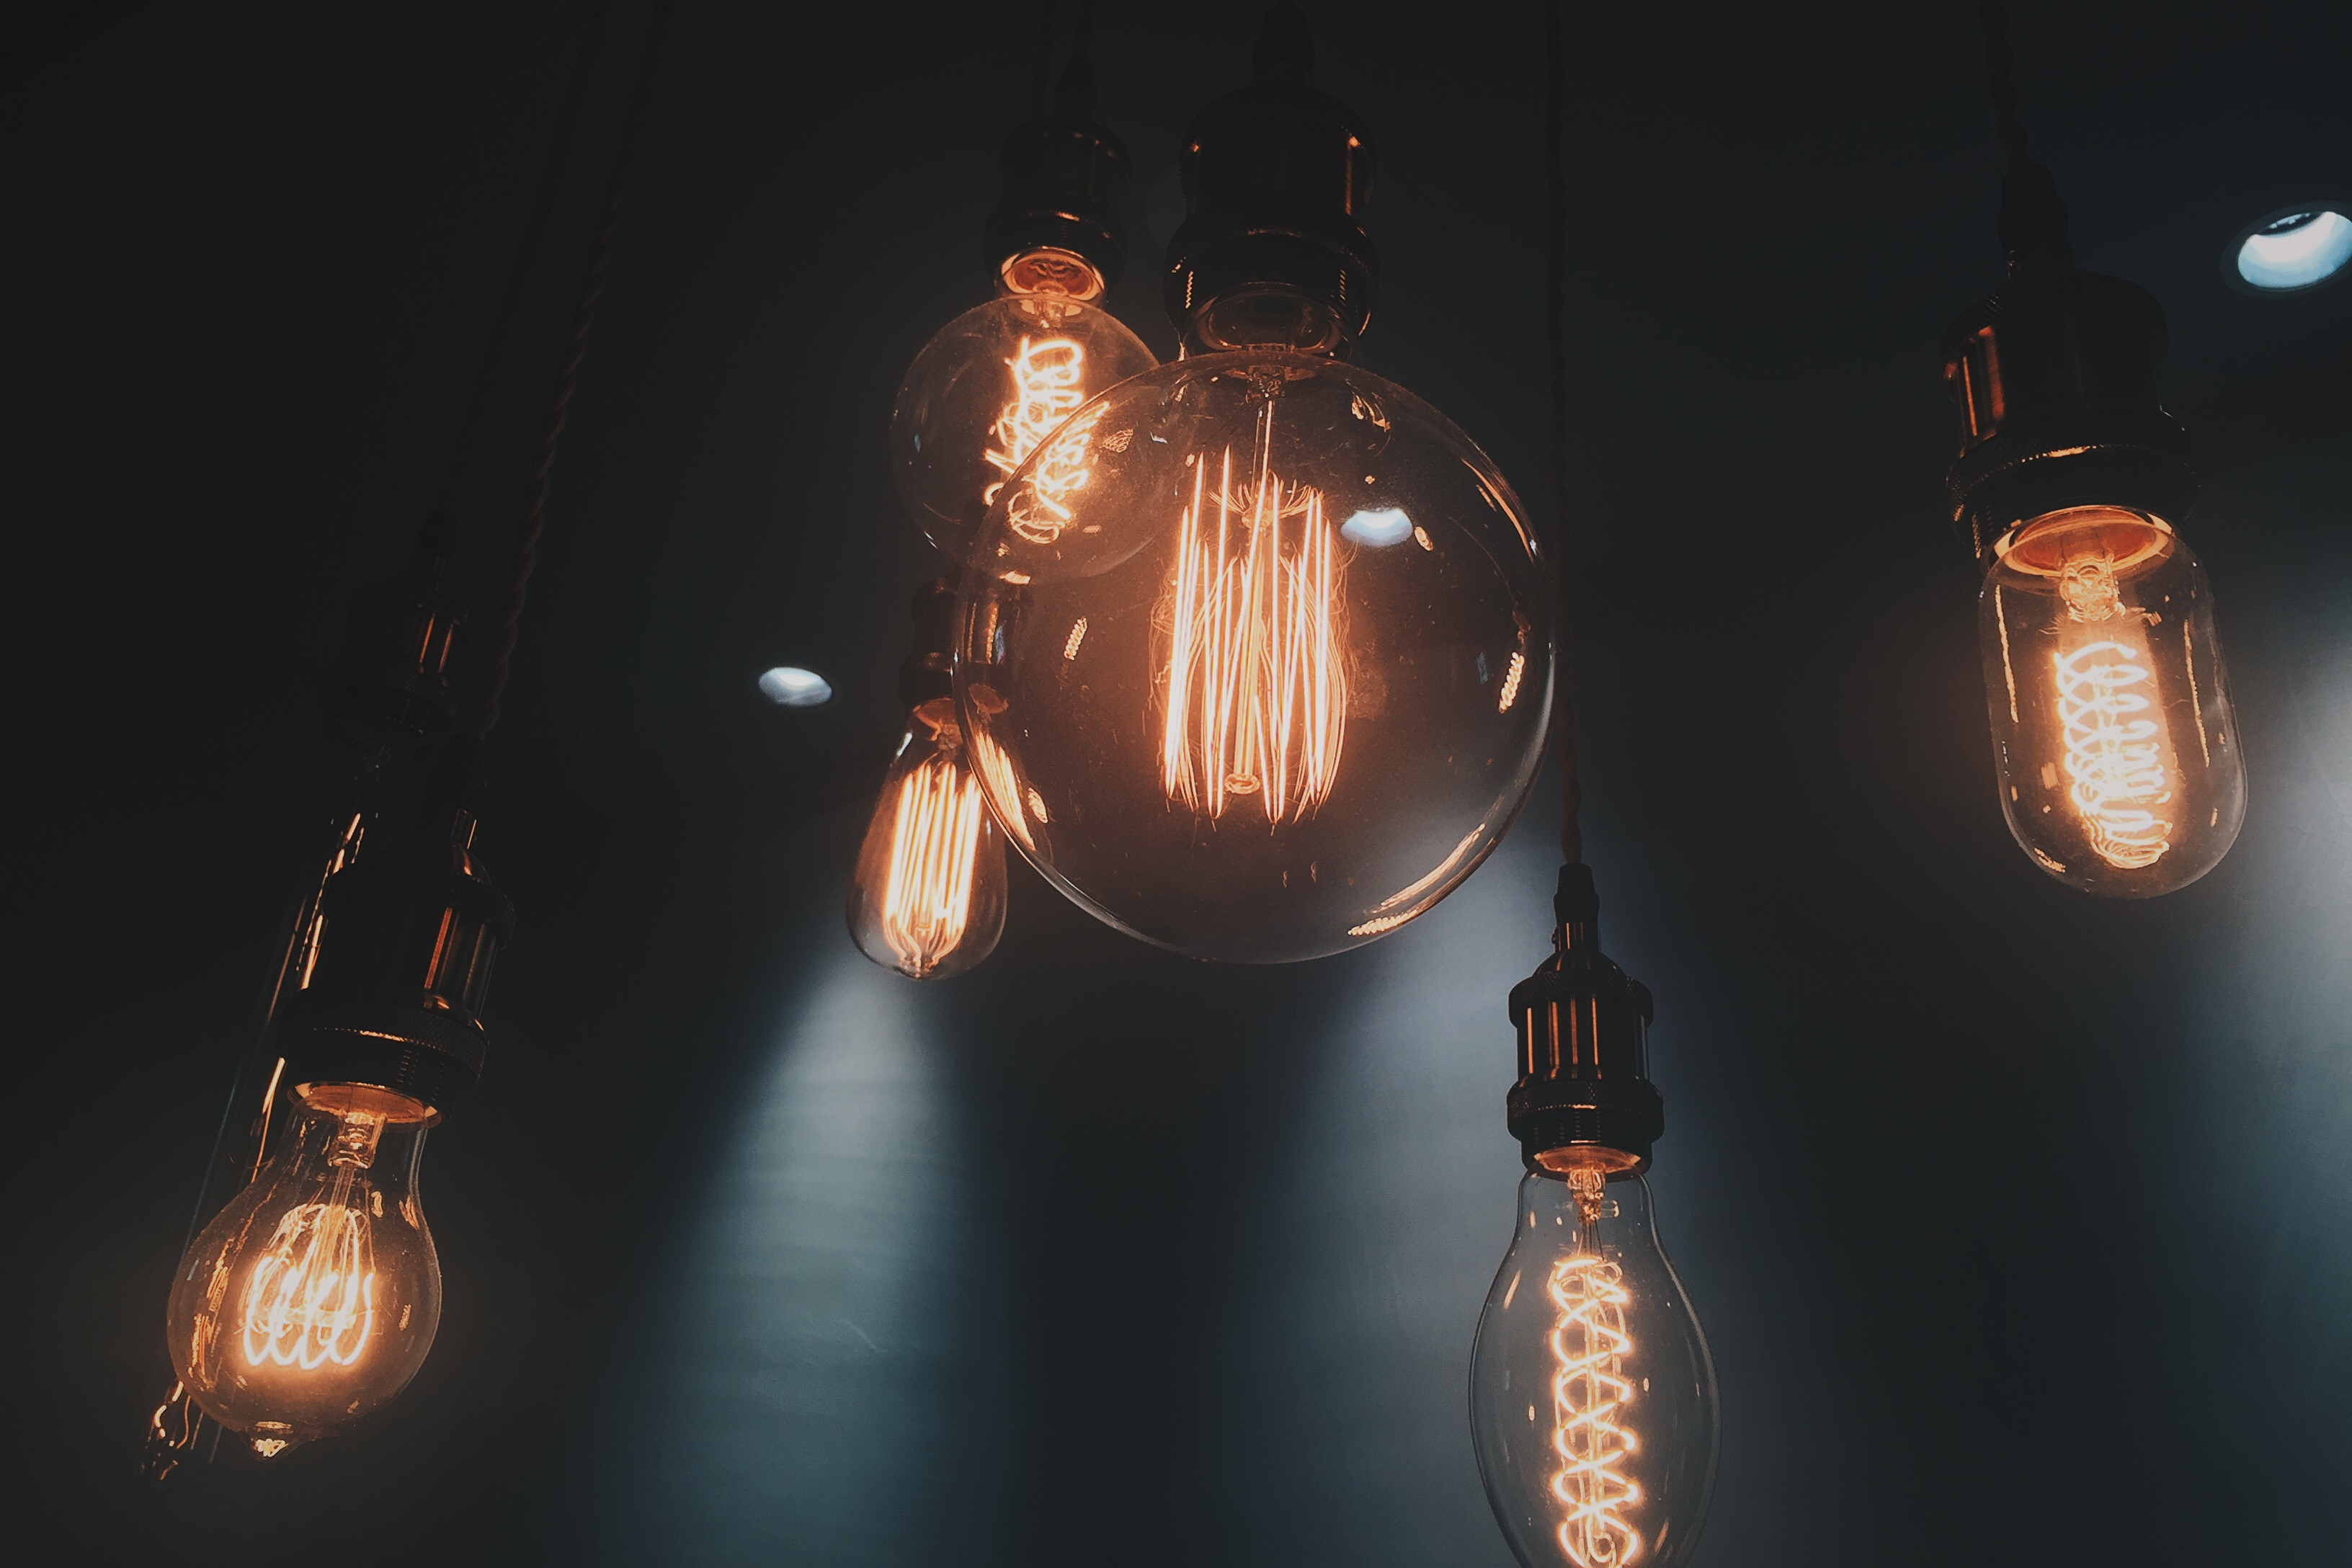 Free stock photos of light bulbs Pexels